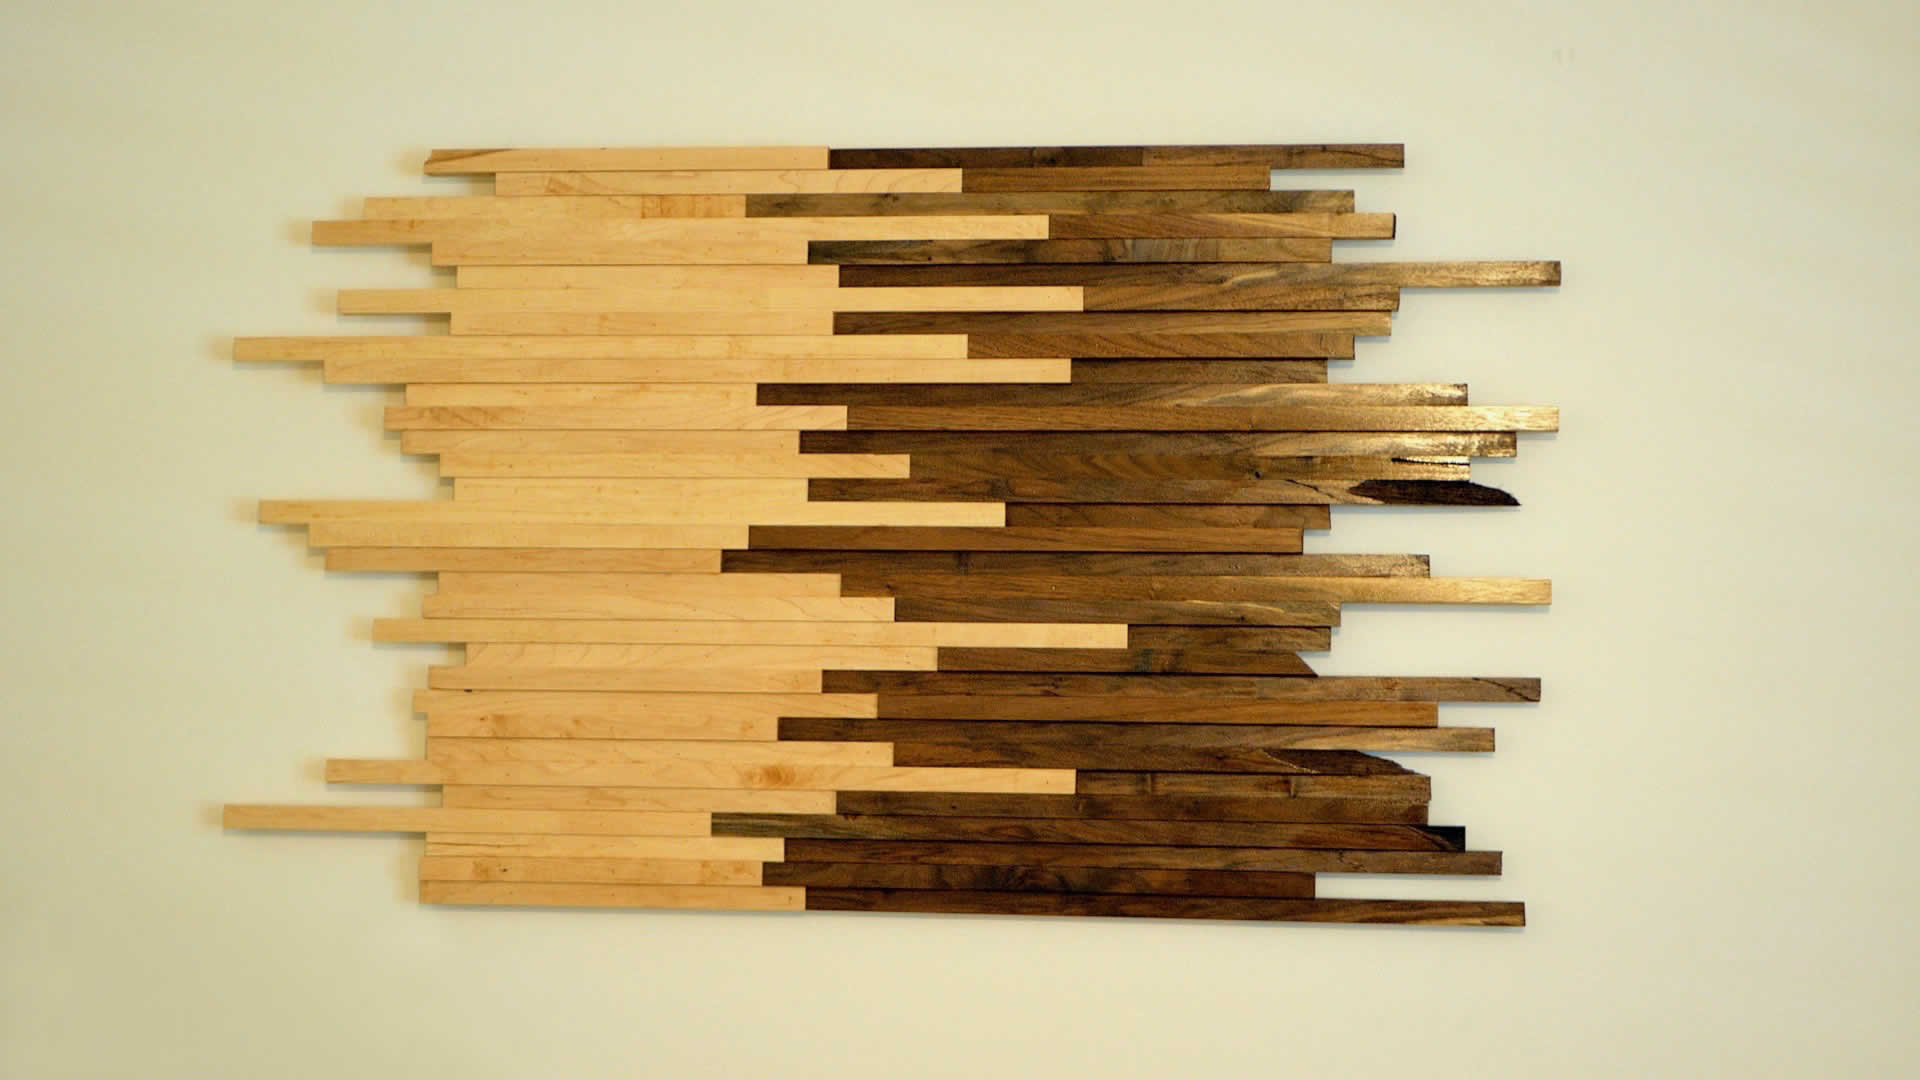 DIY Upcycle: Scrap Wood Wall Art Adds Style | Arrow Projects